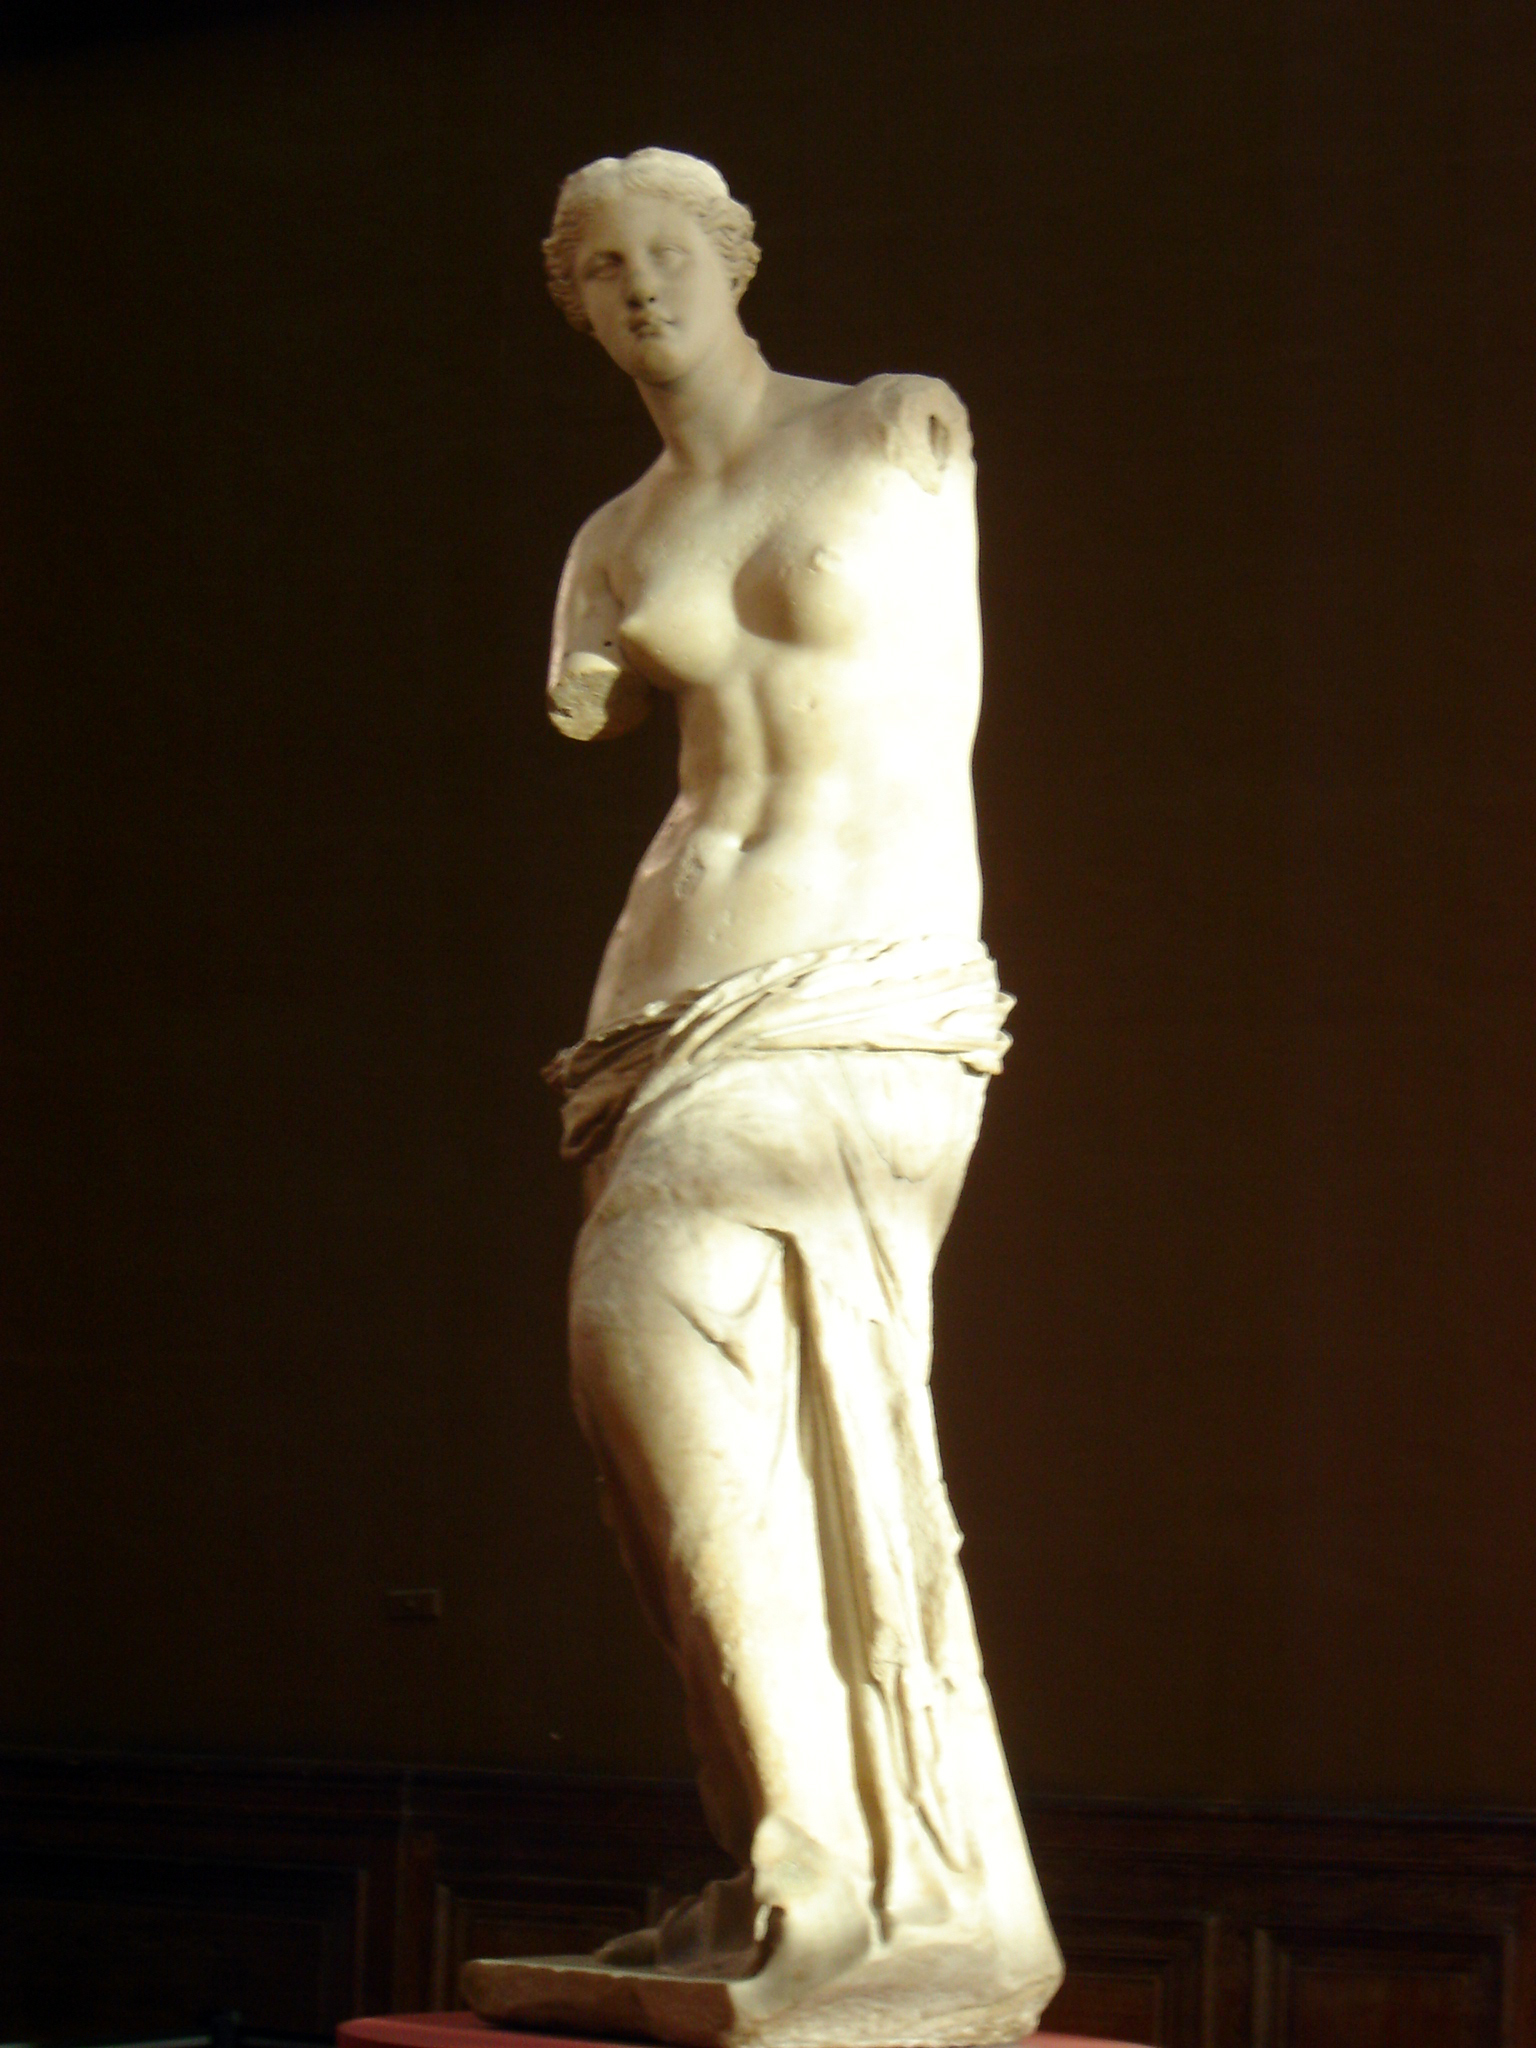 Venus de Milo at the Louvre. Photo by alphacityguides.